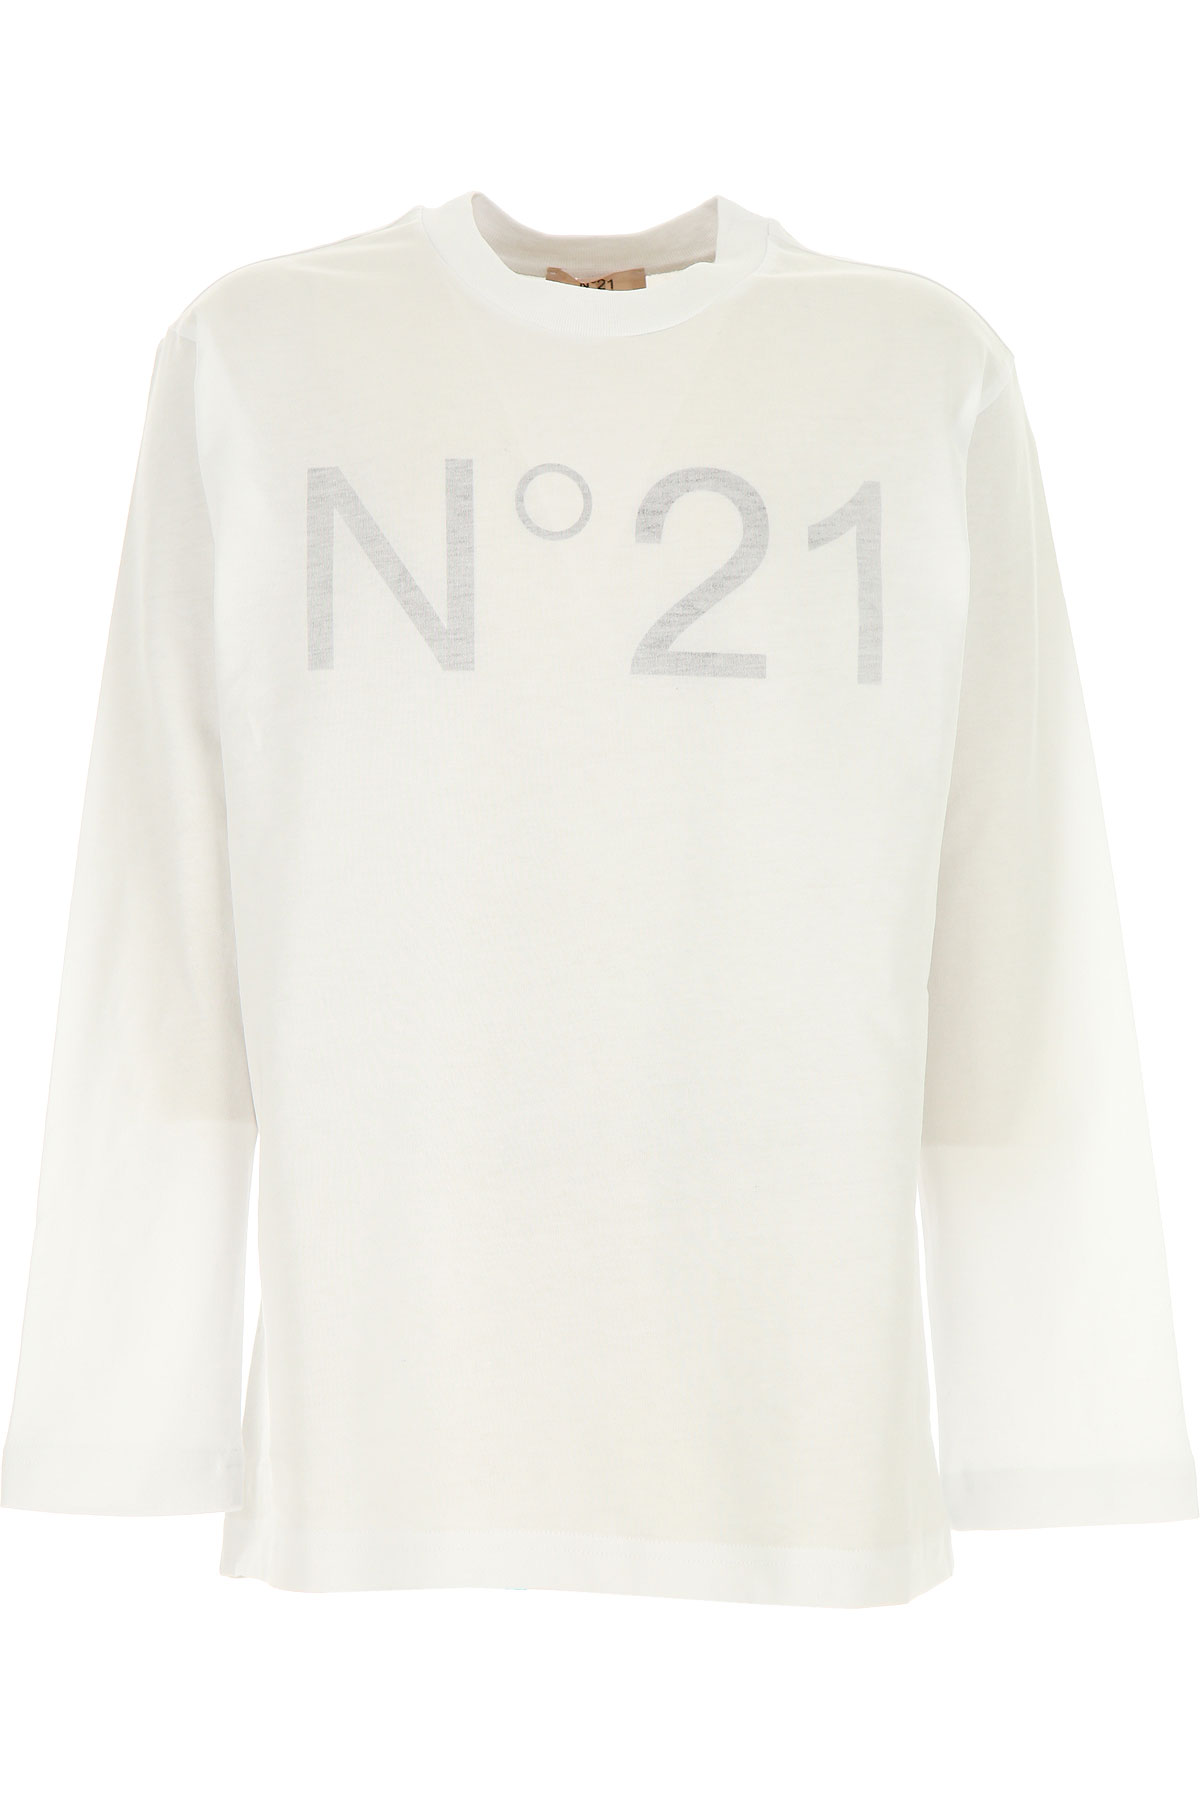 NO 21 Kids T-Shirt for Boys On Sale, White, Cotton, 2019, 10Y 12Y 8Y